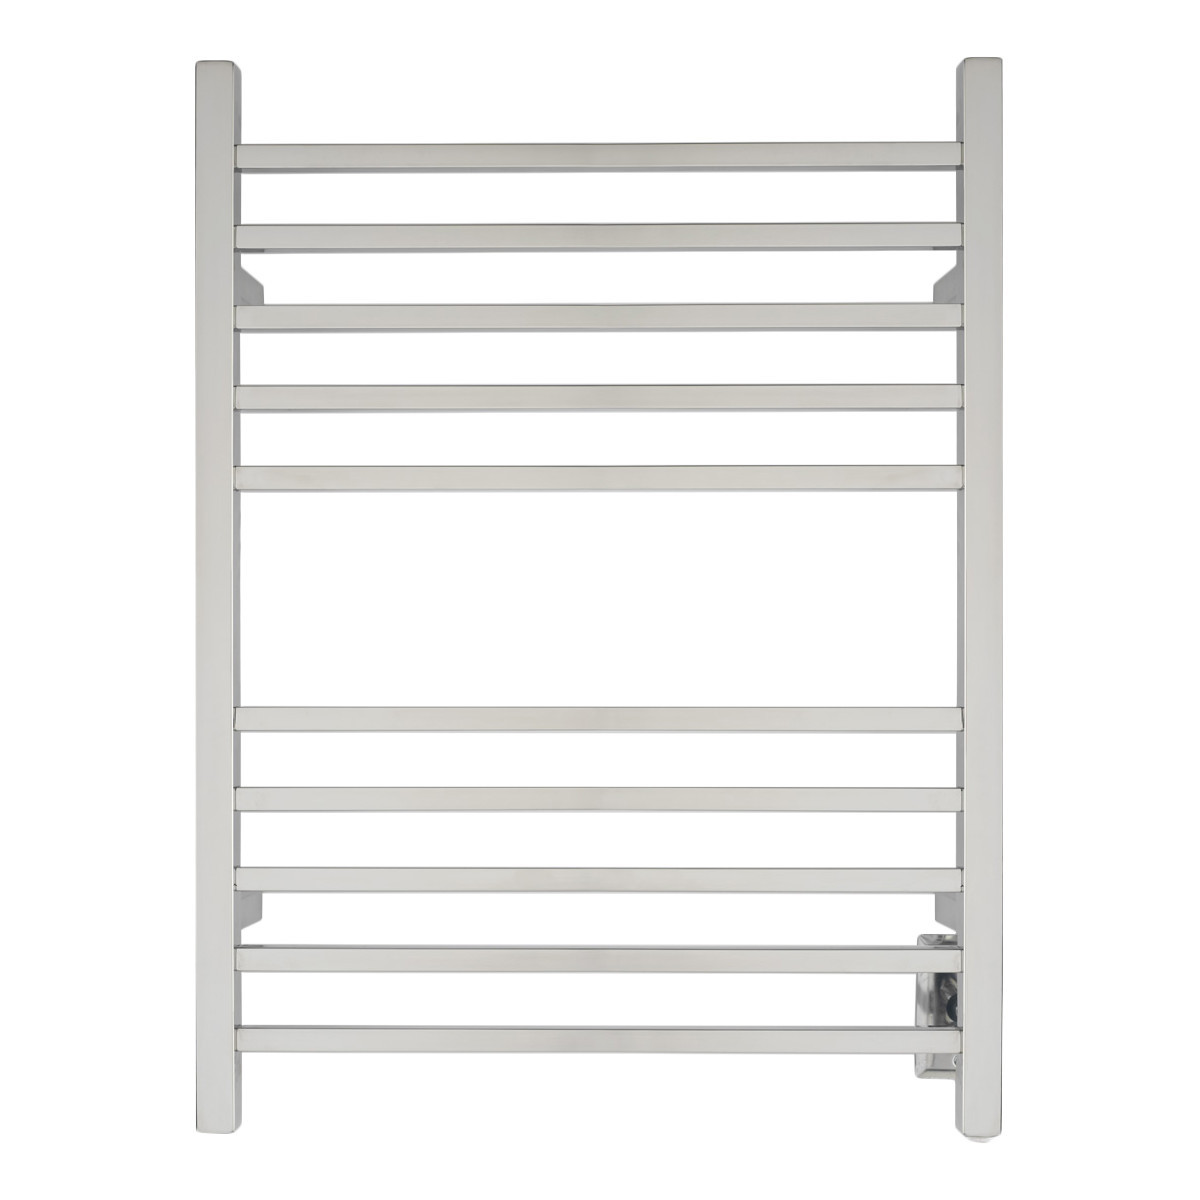 Amba RSWH-P Radiant Wall Mounted Square Hardwired Electric Towel Warmer In Polished Stainless Steel